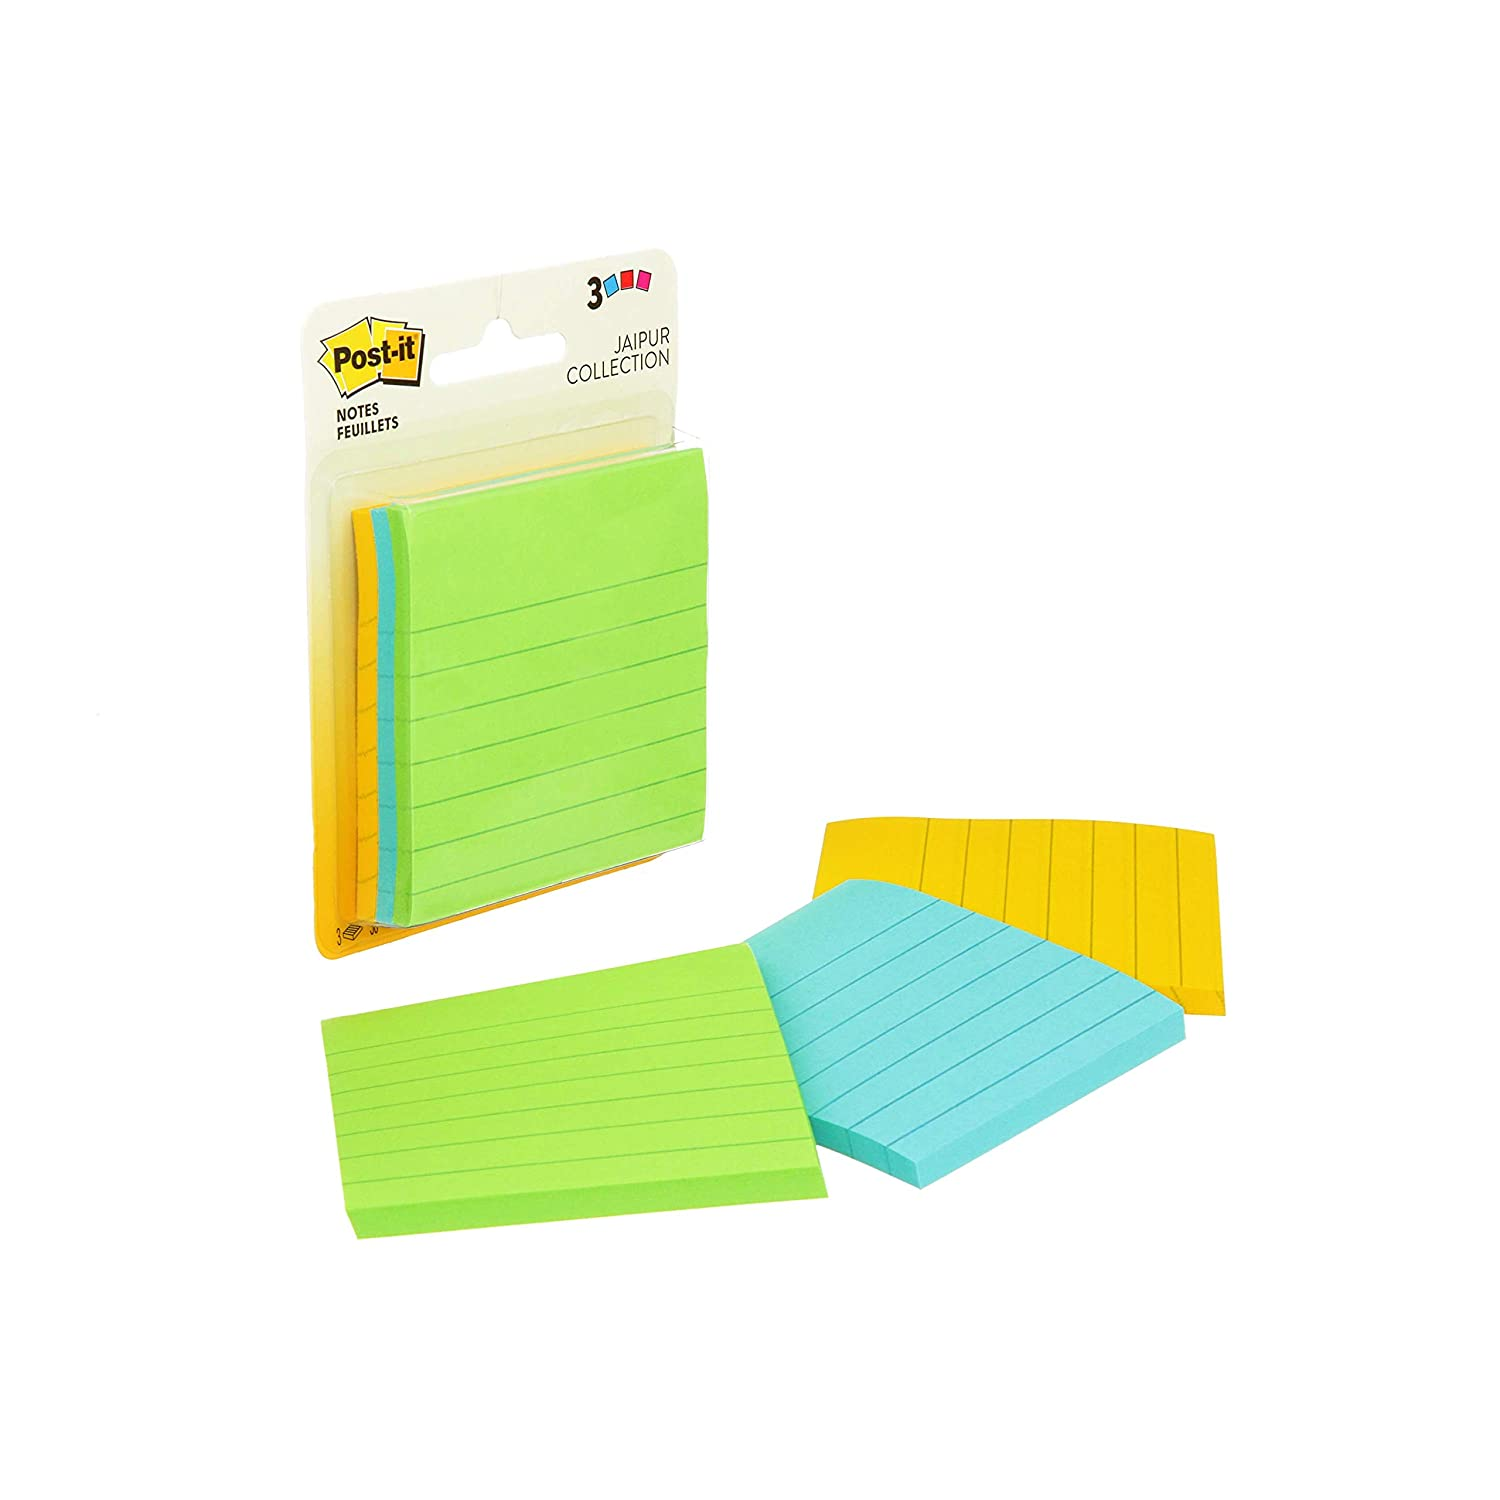 3 in x 5 in Post-it Notes Cape Town Coll... America's #1 Favorite Sticky Note